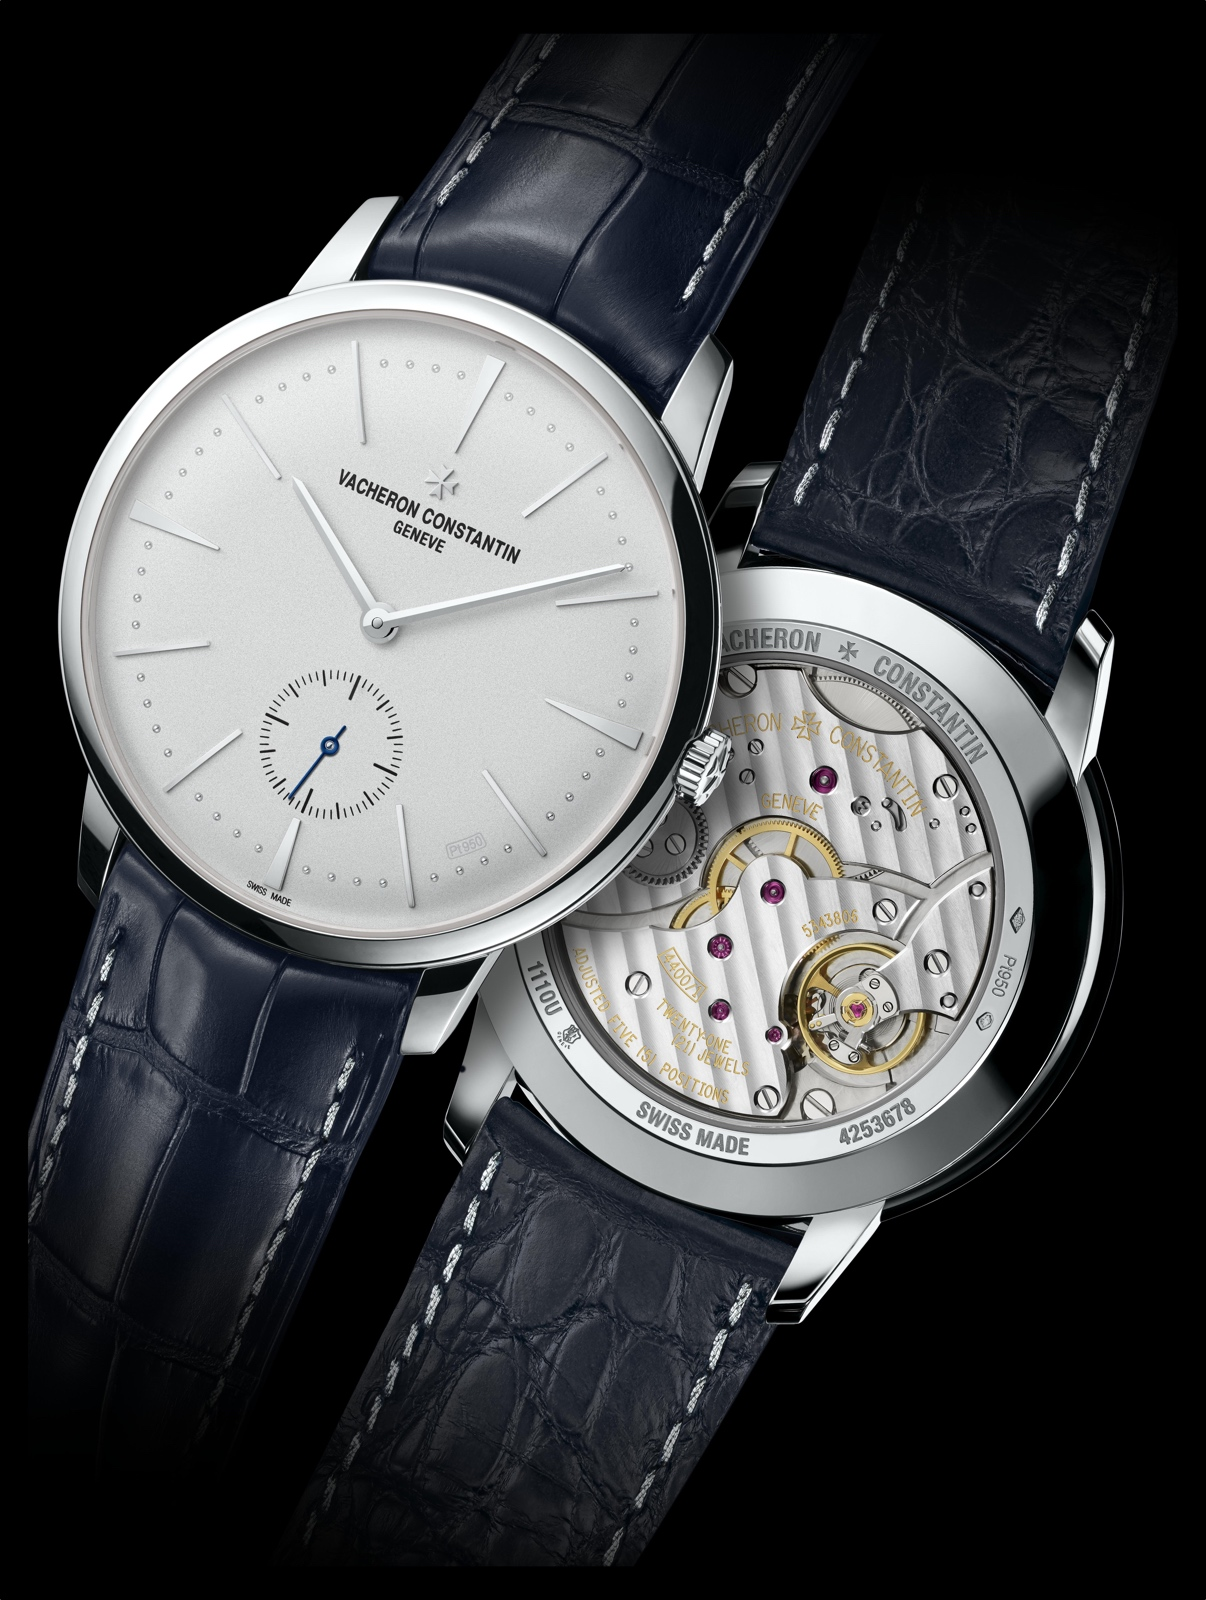 Vacheron Constantin Collection Excellence Platine face-dos